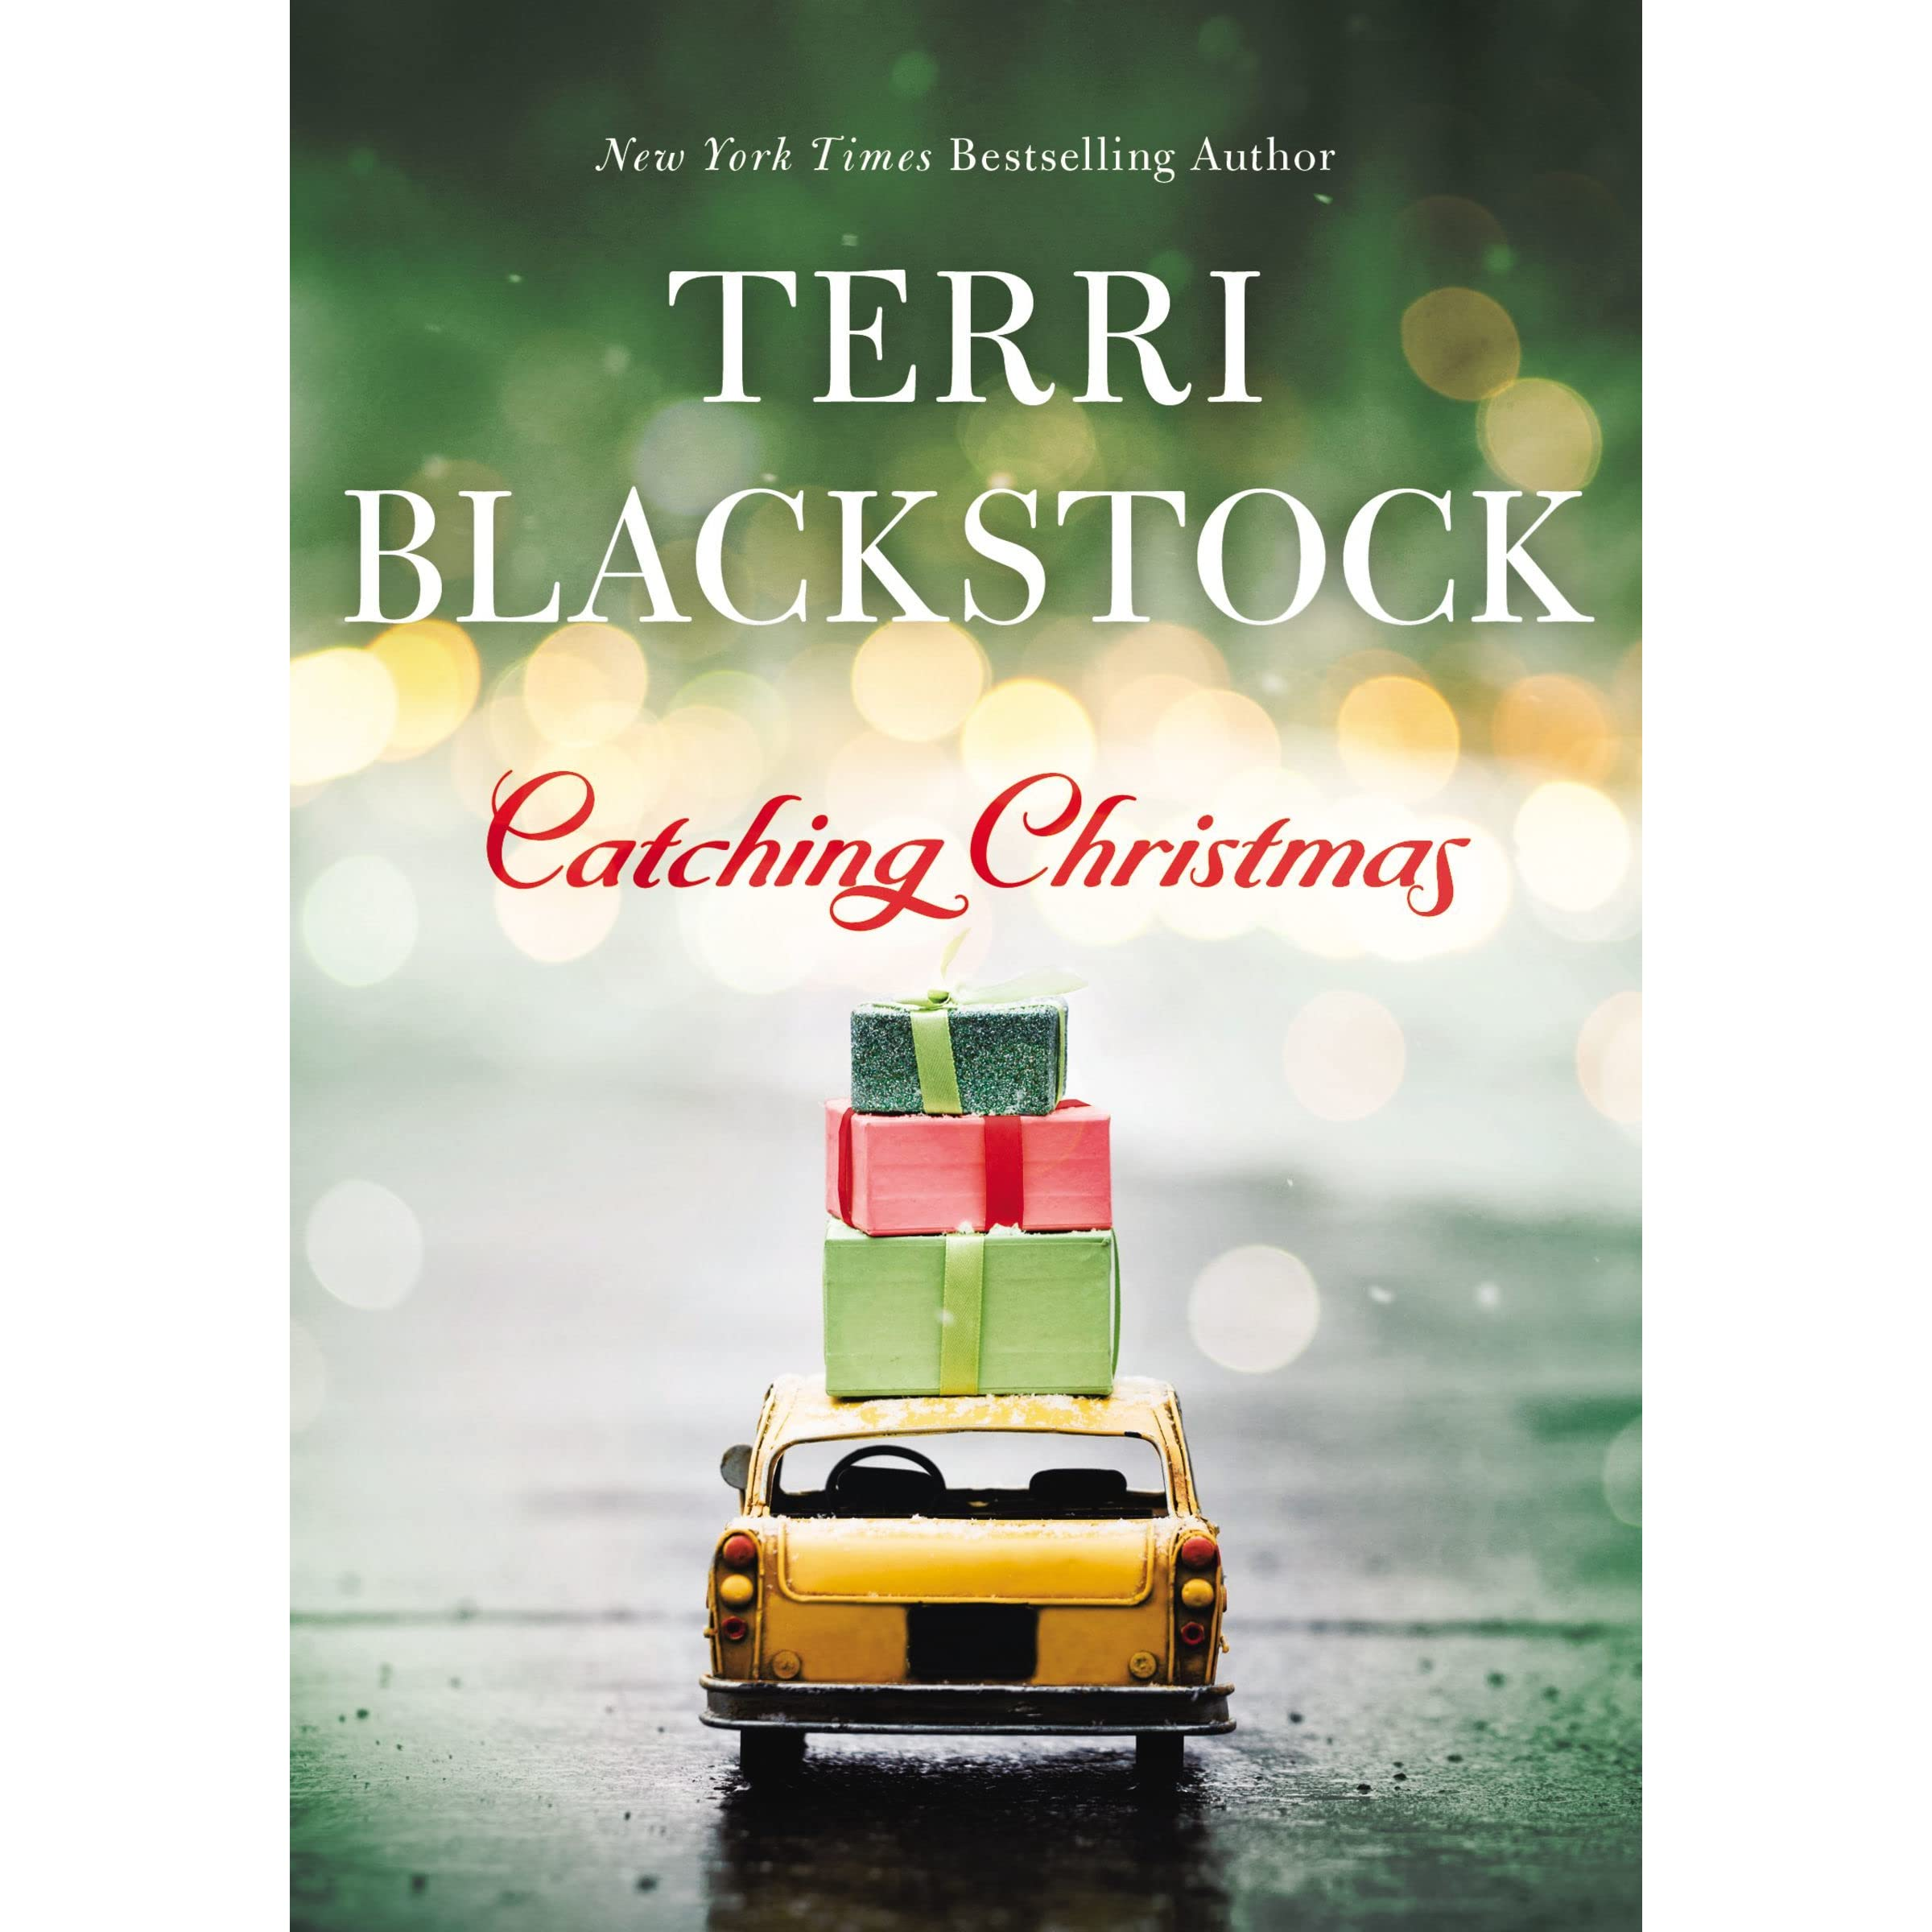 Catching Christmas by Terri Blackstock